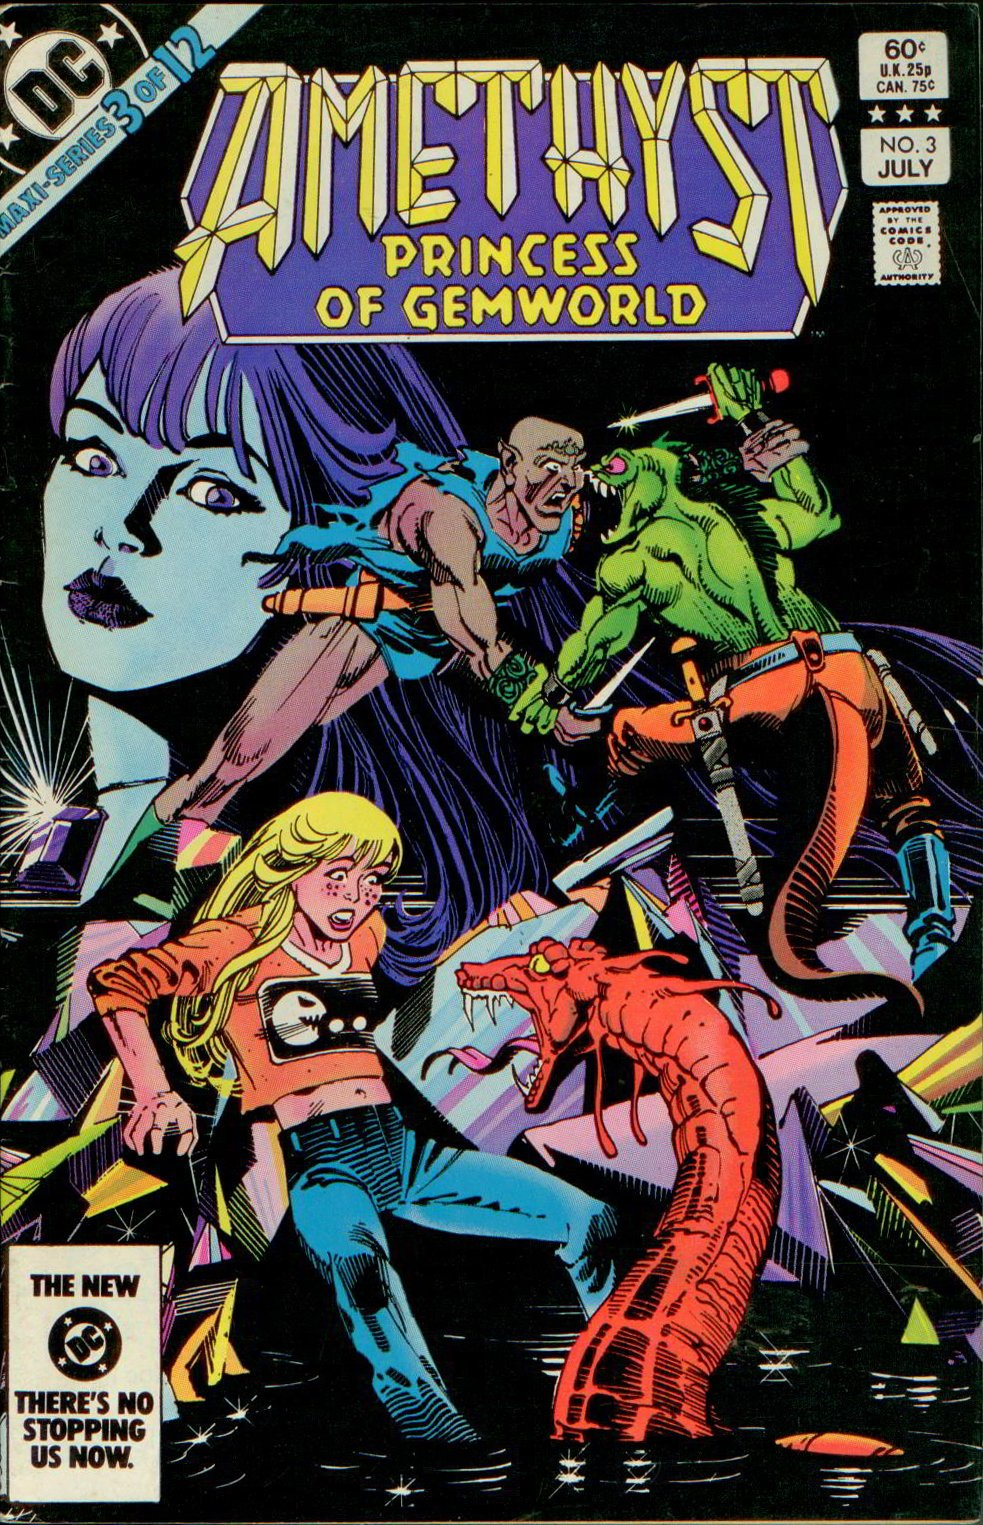 AMETHYST, PRINCESS OF GEMWORLD V1 4 of 12, DC 1983